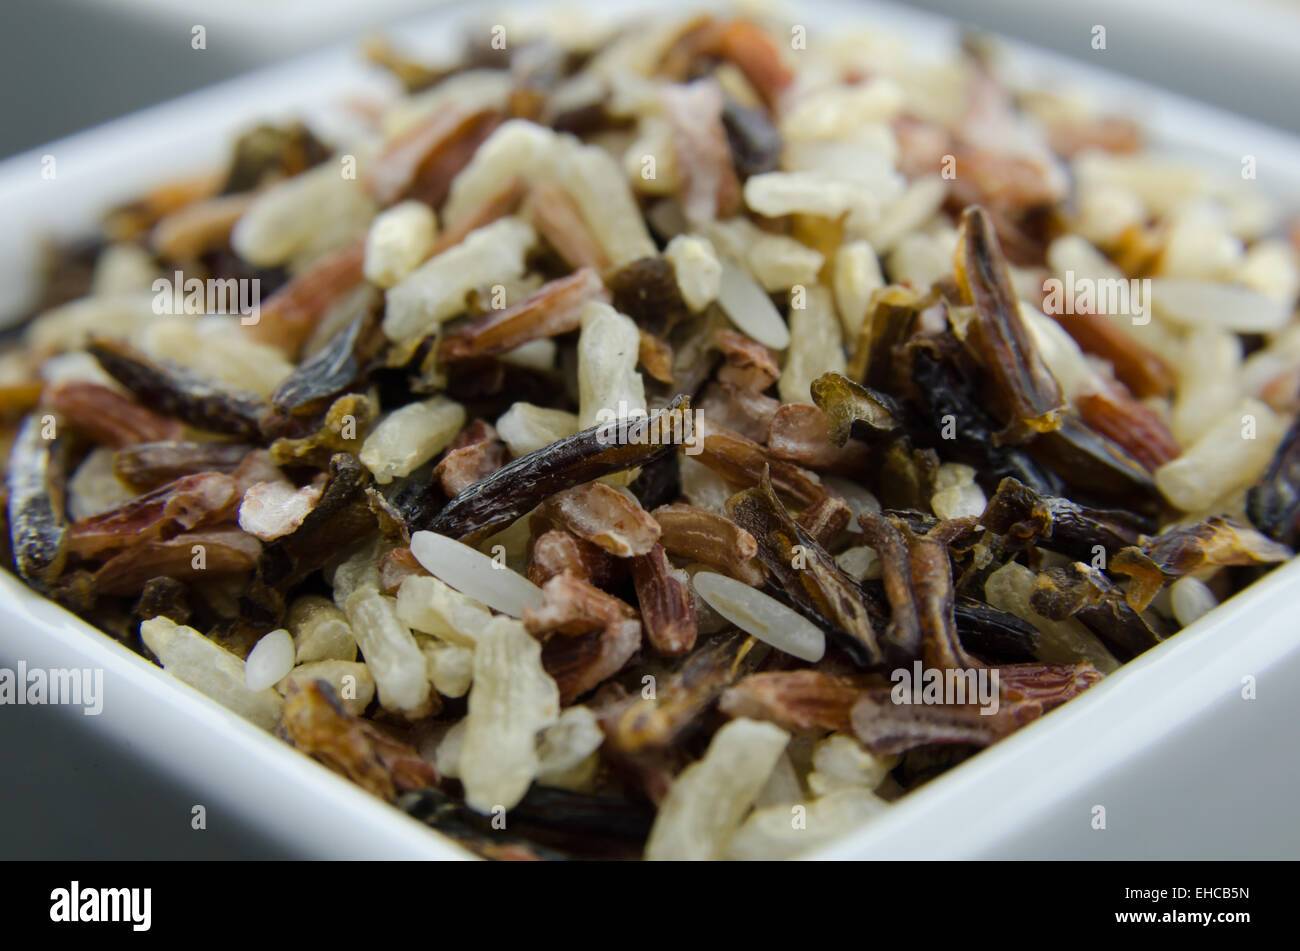 A close up of wild rice grains in a white ceramic bowl - Stock Image